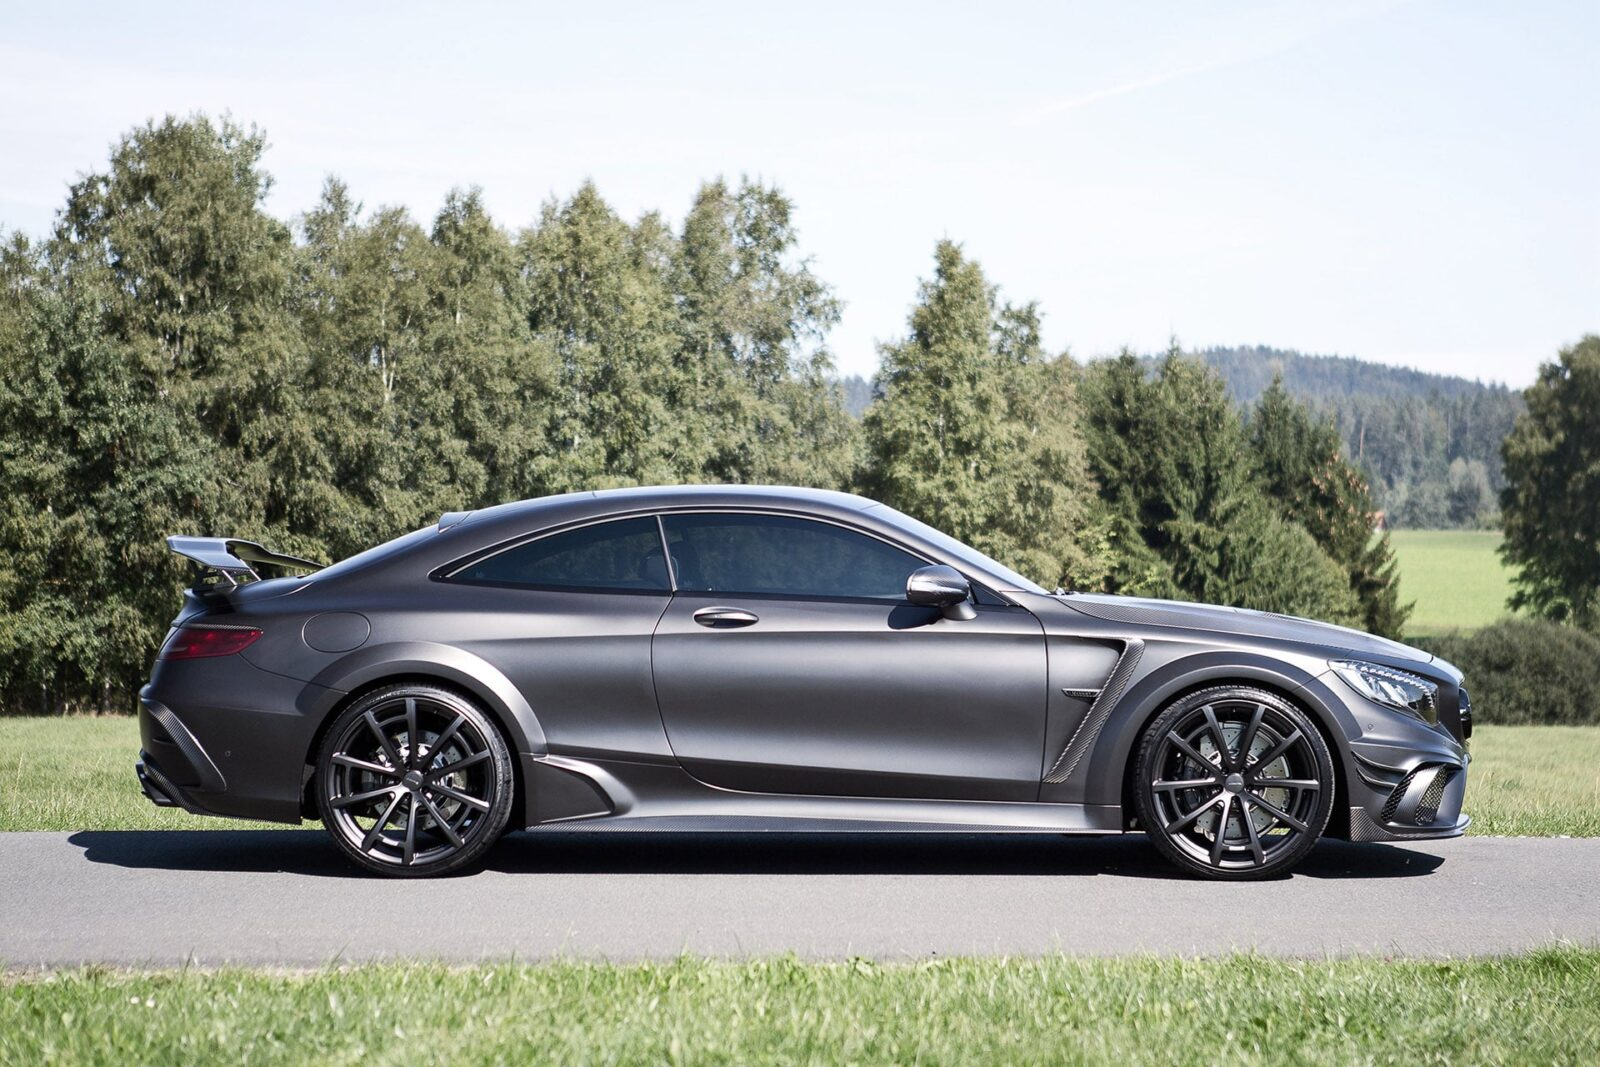 Mercedes Modified Cars Wallpapers Mercedes Benz Amg S63 Coupe Wallpapers Hd Download